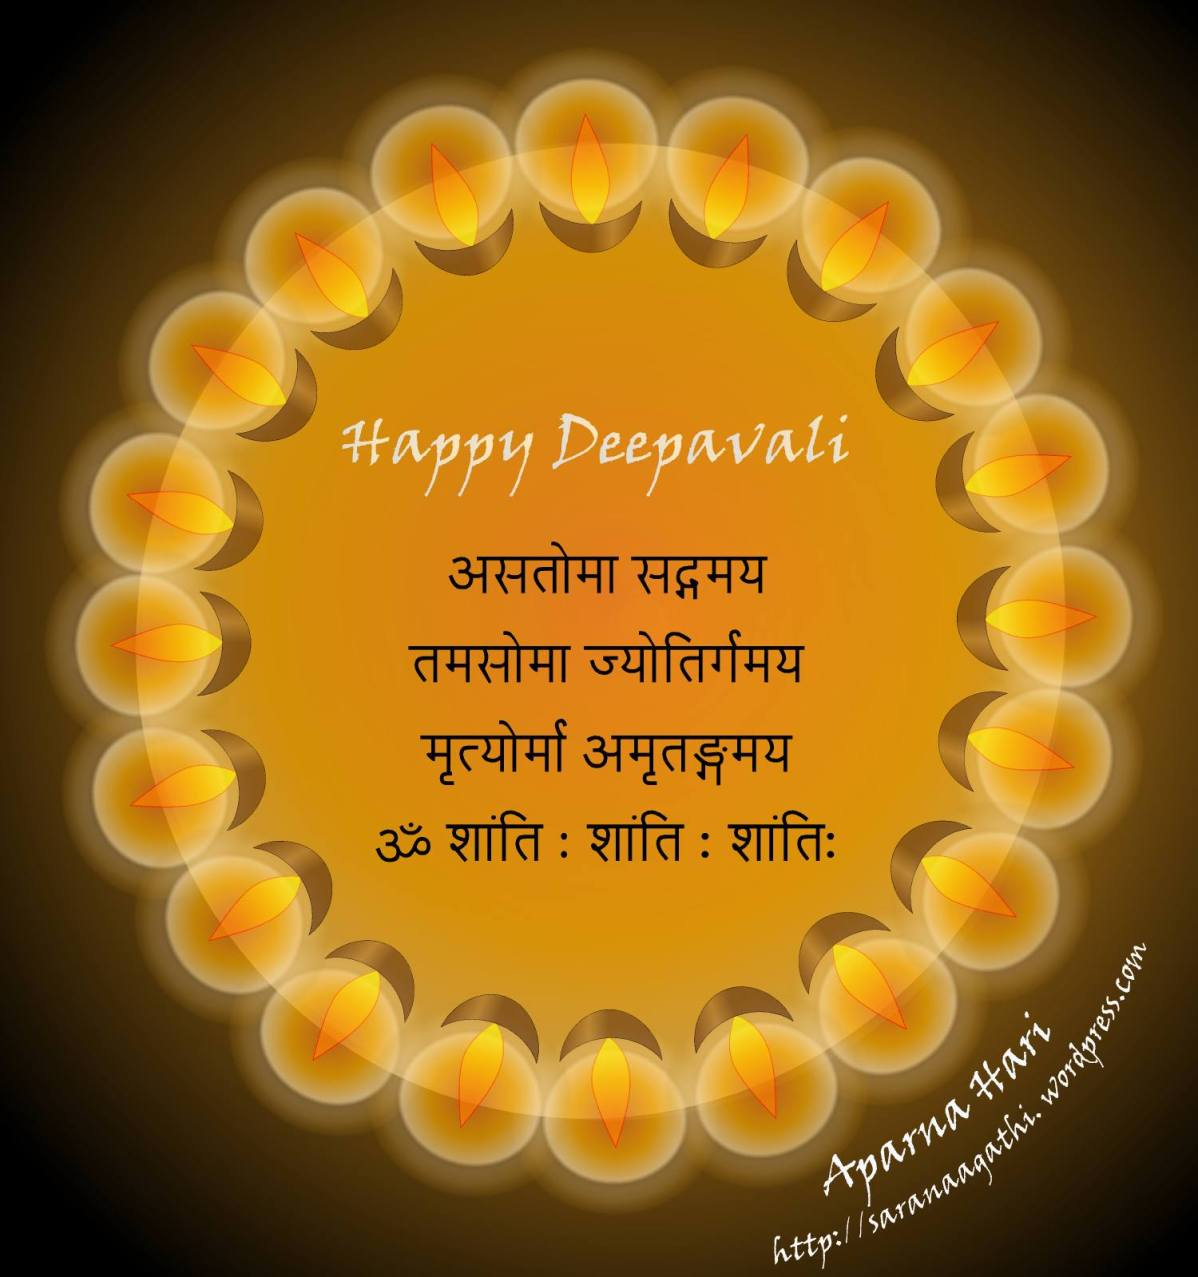 Deepavali Greetings from Saranaagathi